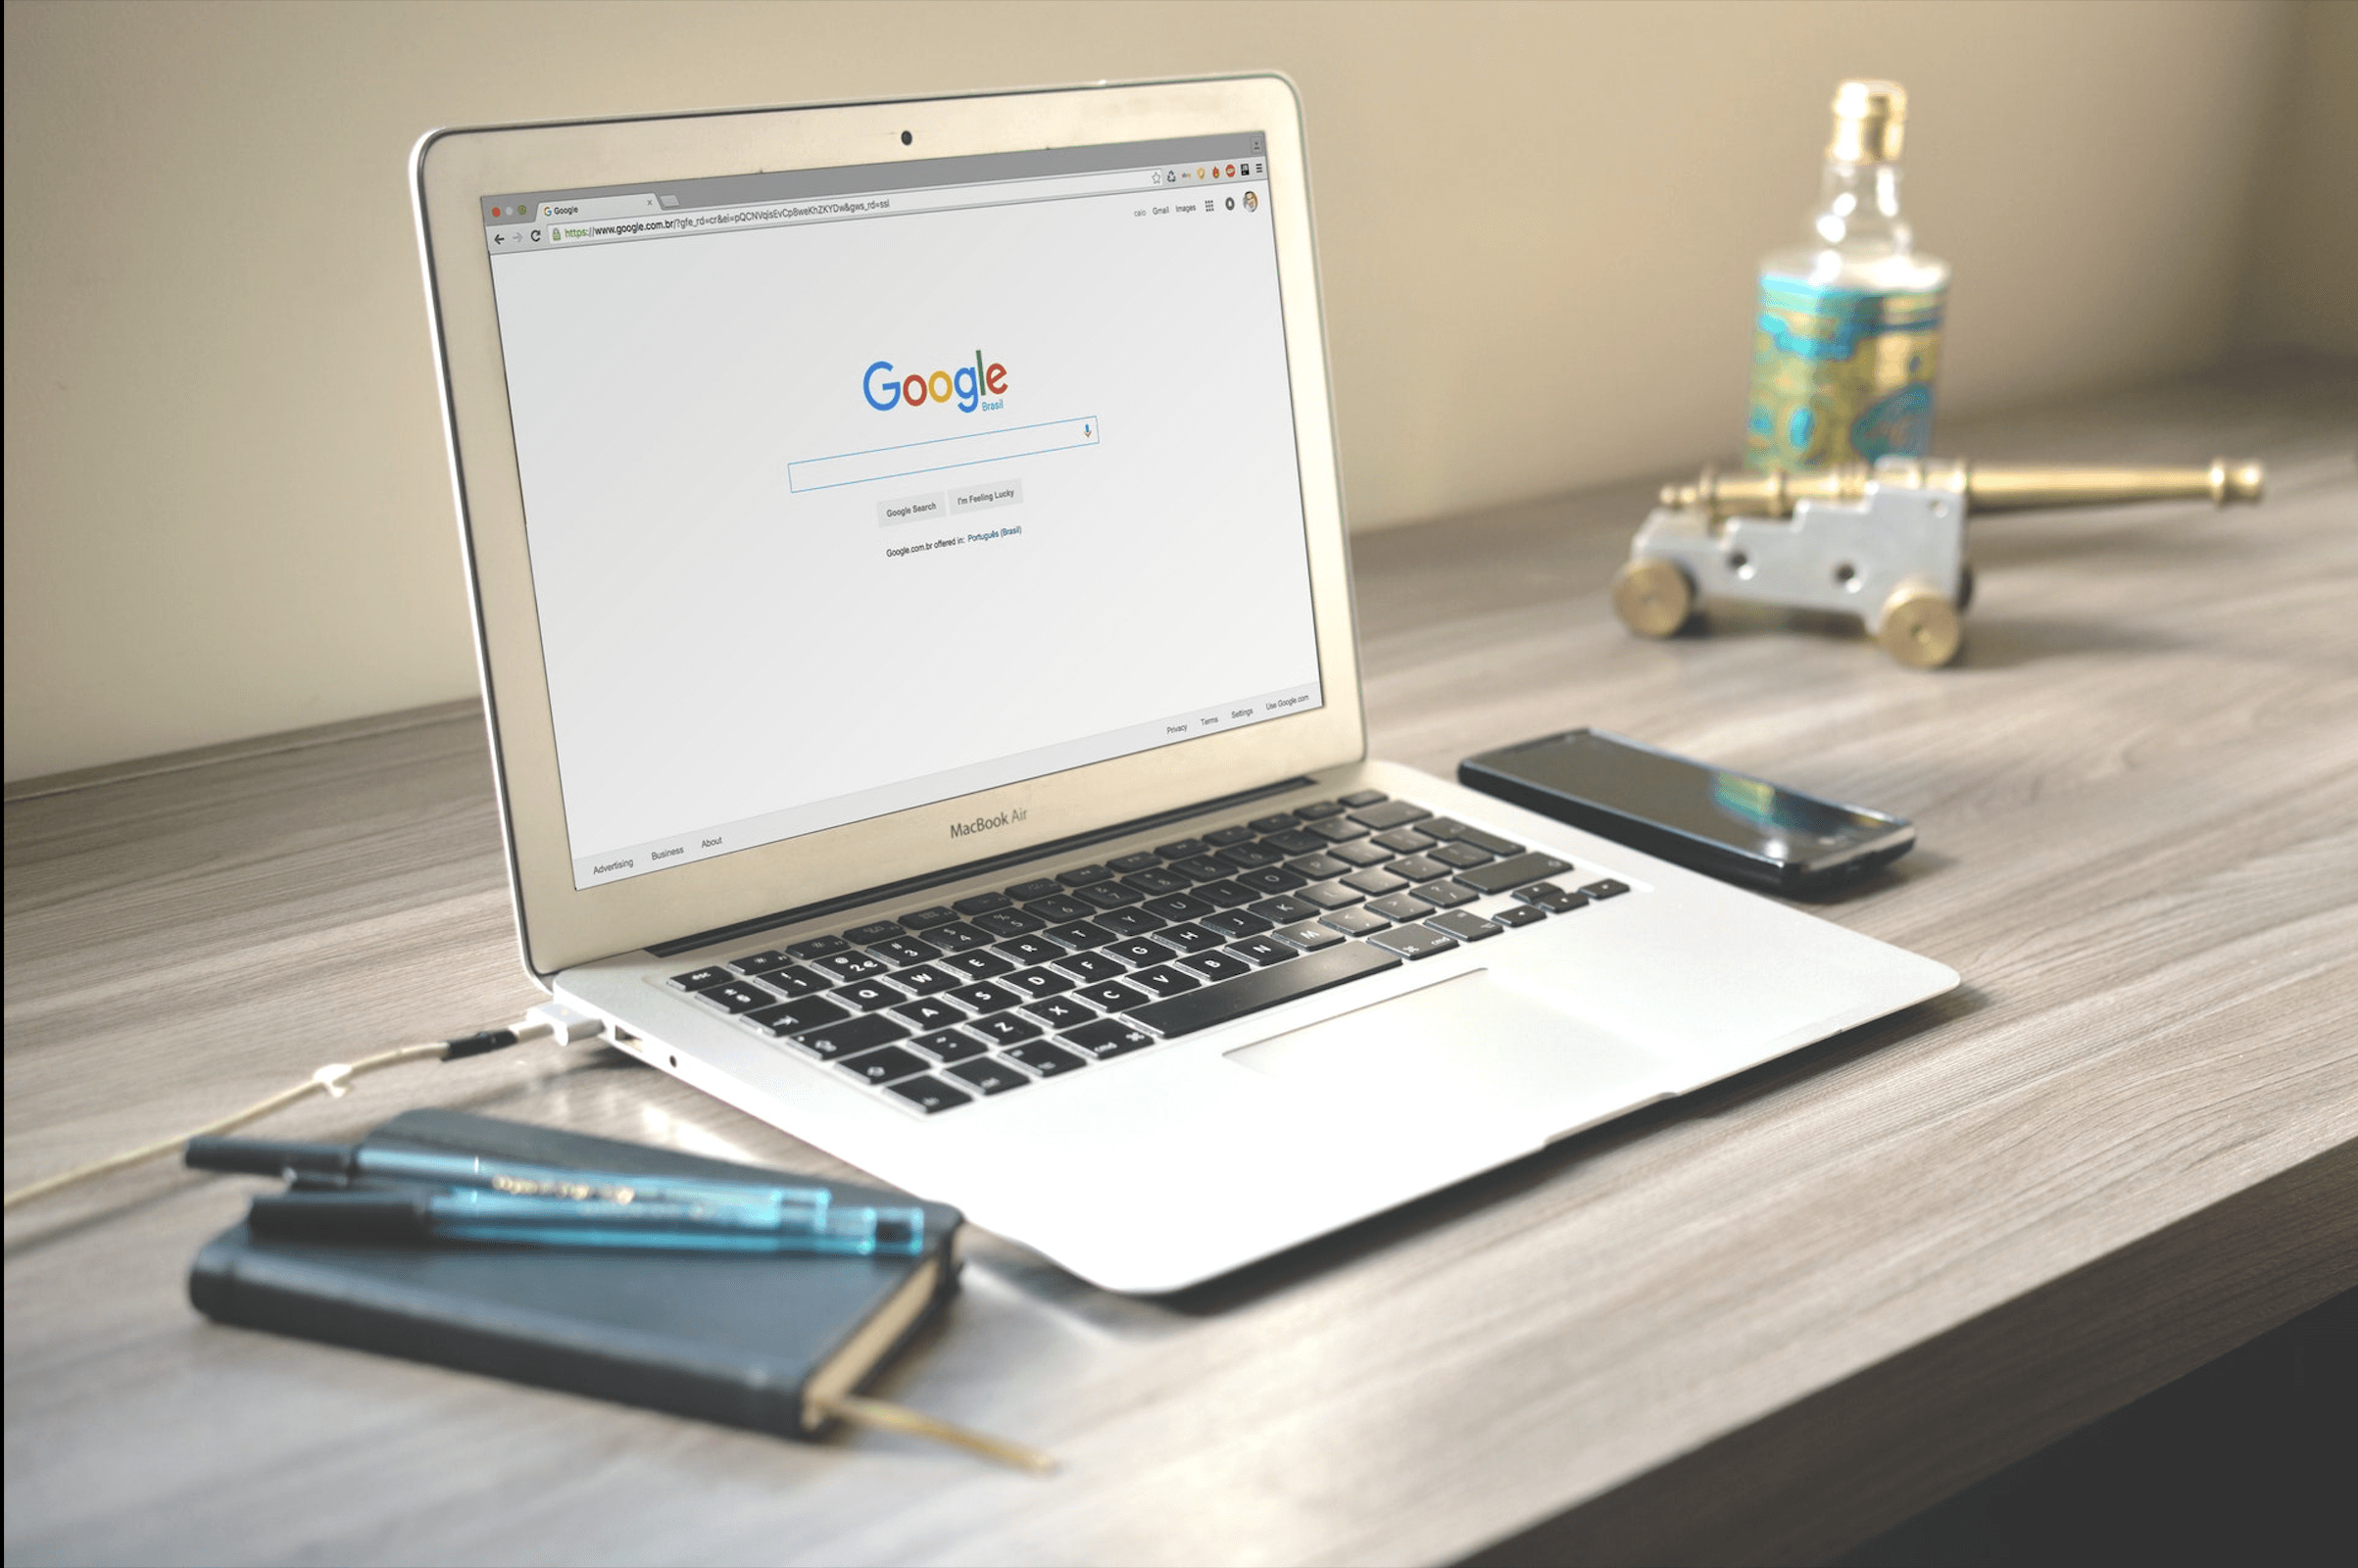 How to Open the Google Search Links in New Tab